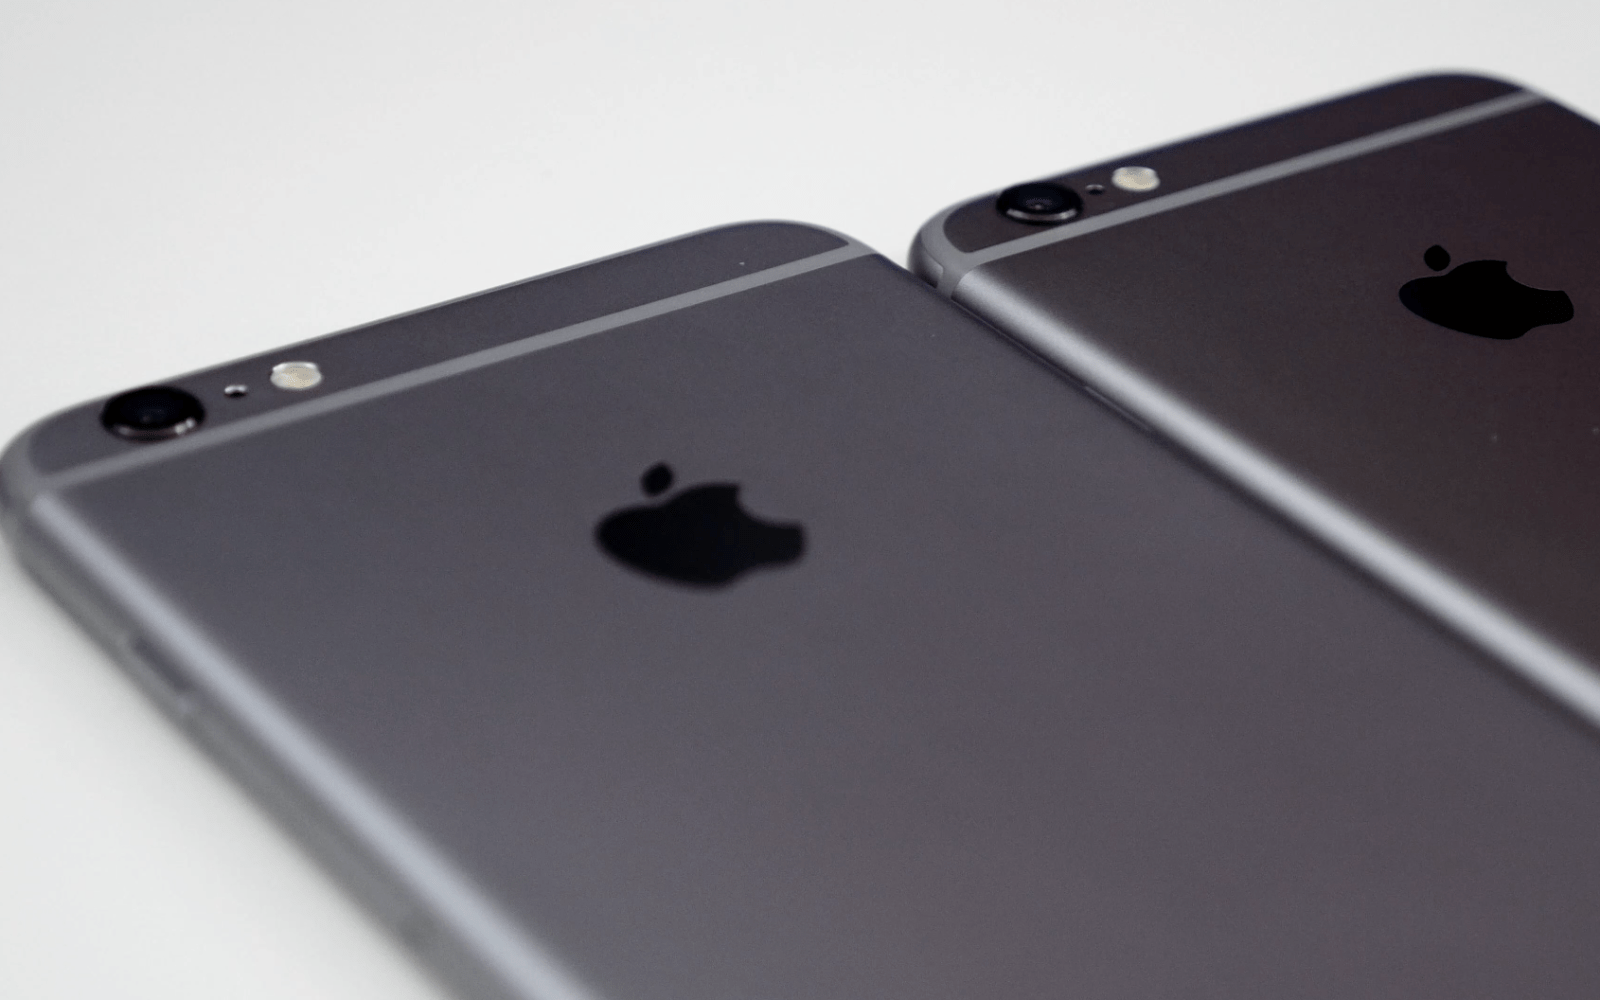 Bigger, stronger iPhone could add Force Touch and battery life, eliminate #bendgate and camera bump